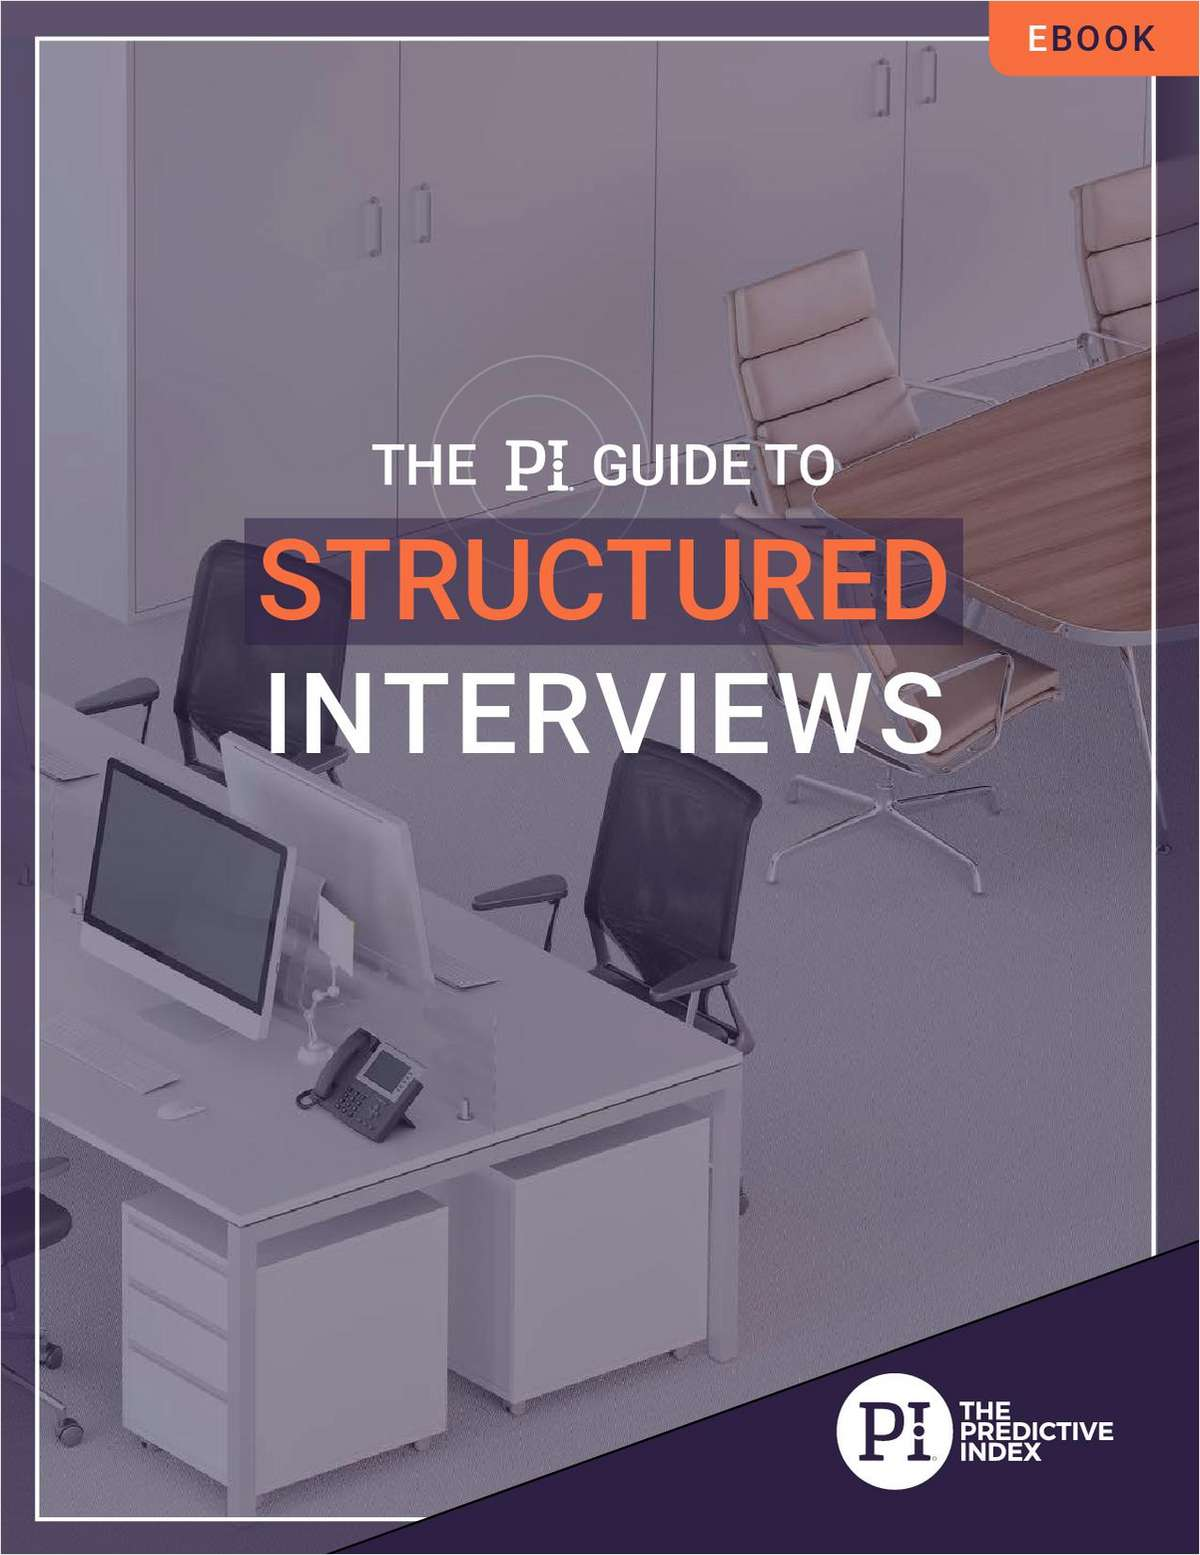 The PI Guide to Structured Interviews